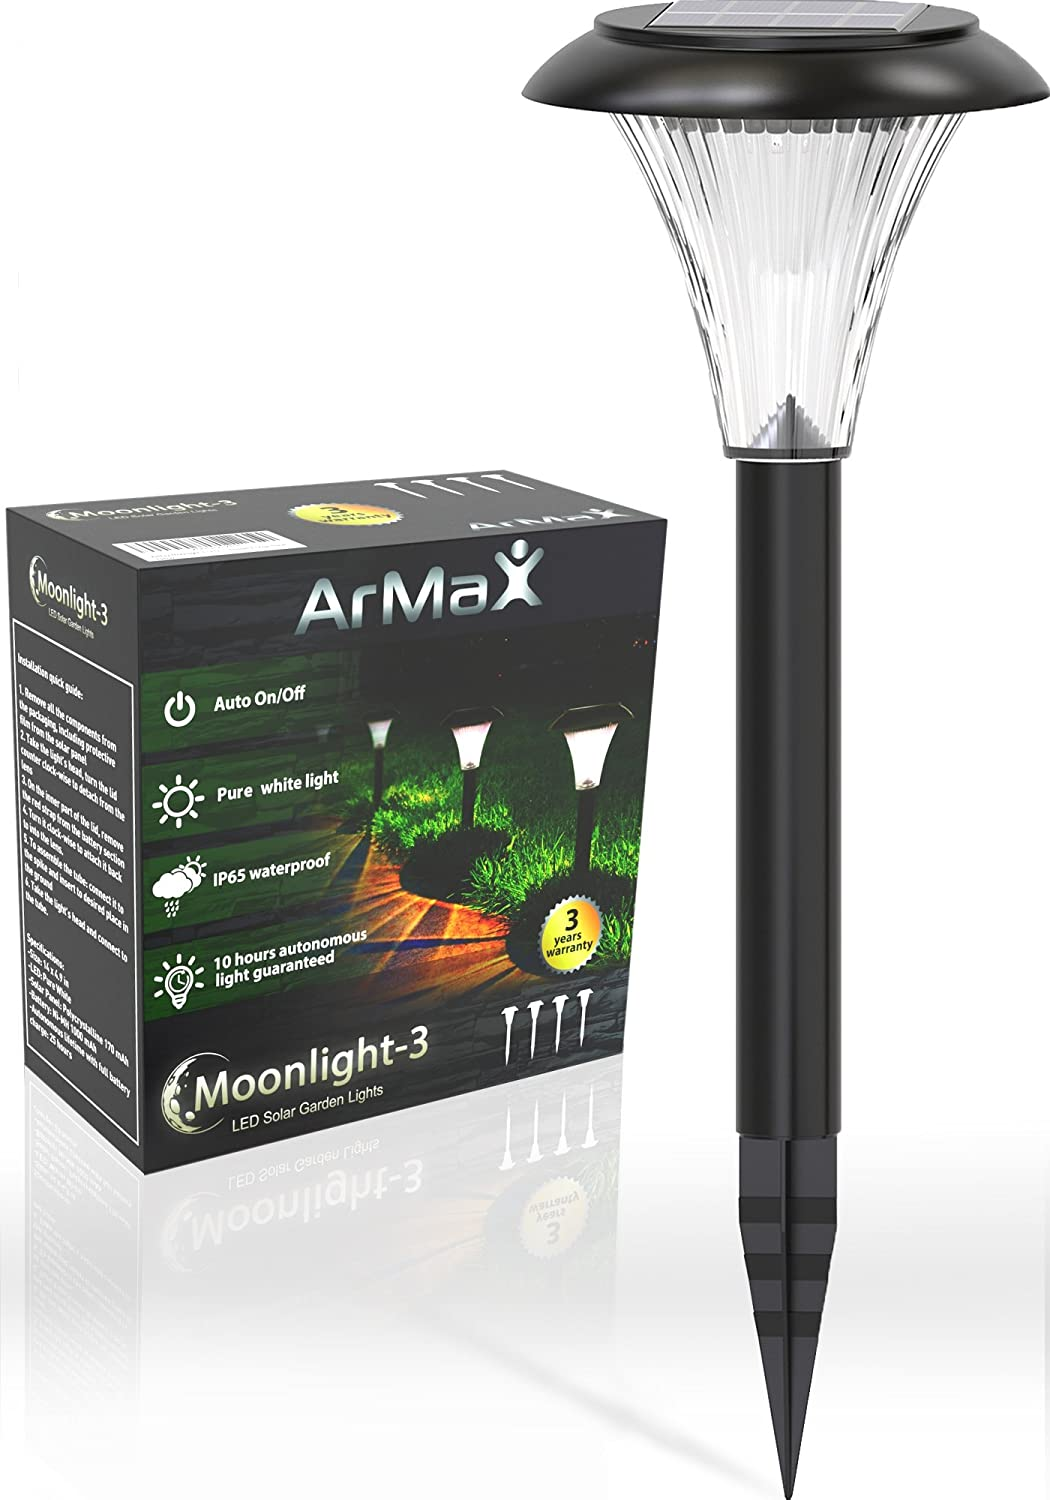 ArMax Solar Pathway Lights Outdoor V2.0 - for Garden Yard Lawn Path Walkway Driveway Sidewalk Outside - Landscape Lighting - Bright Cool White LED - Stake Light - Up to 25HR - 4 PCS - Waterproof